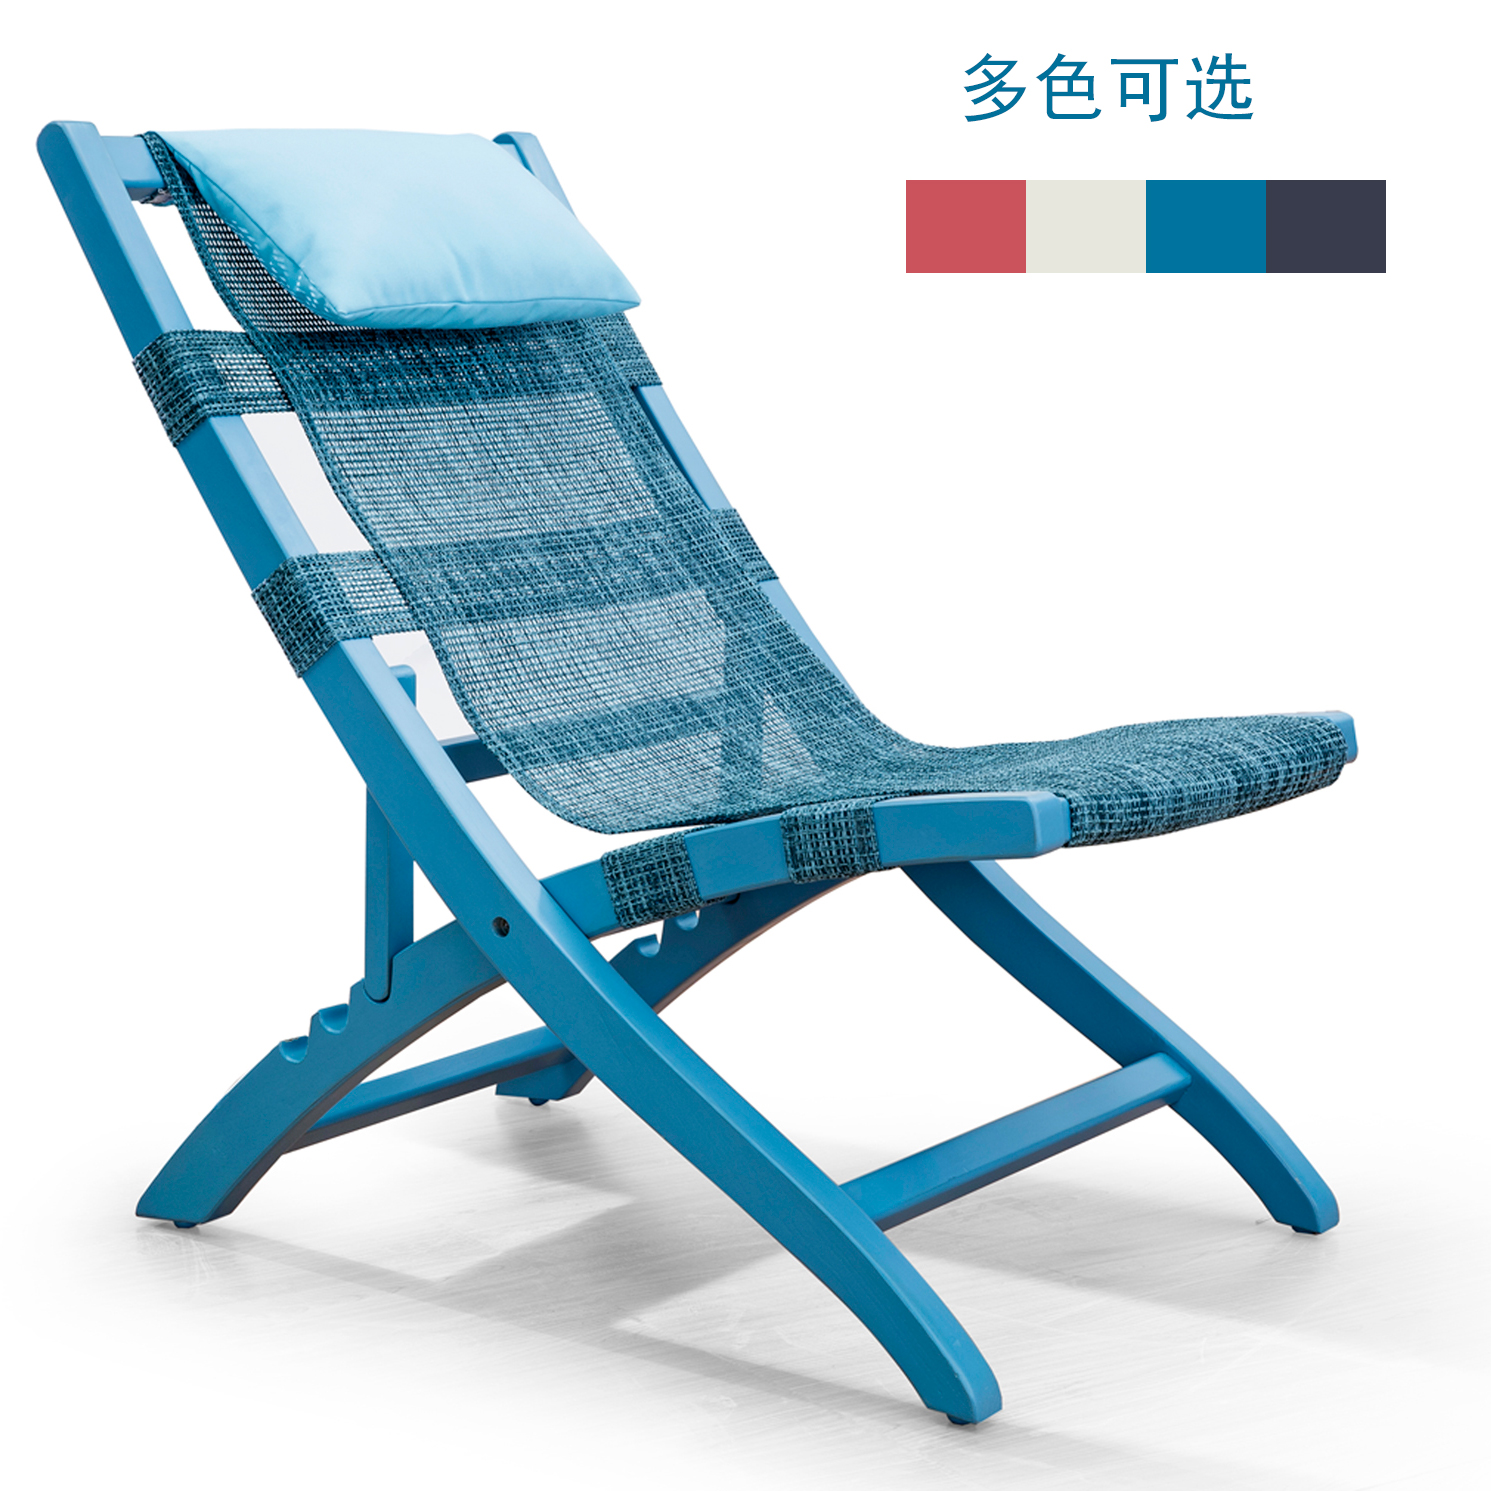 Folding Chaise Lounge Chair Outdoor Tot Sprout High Review Solid Wood Bedroom Chairs Wooden Balcony Patio Cloth Contraction Recliner